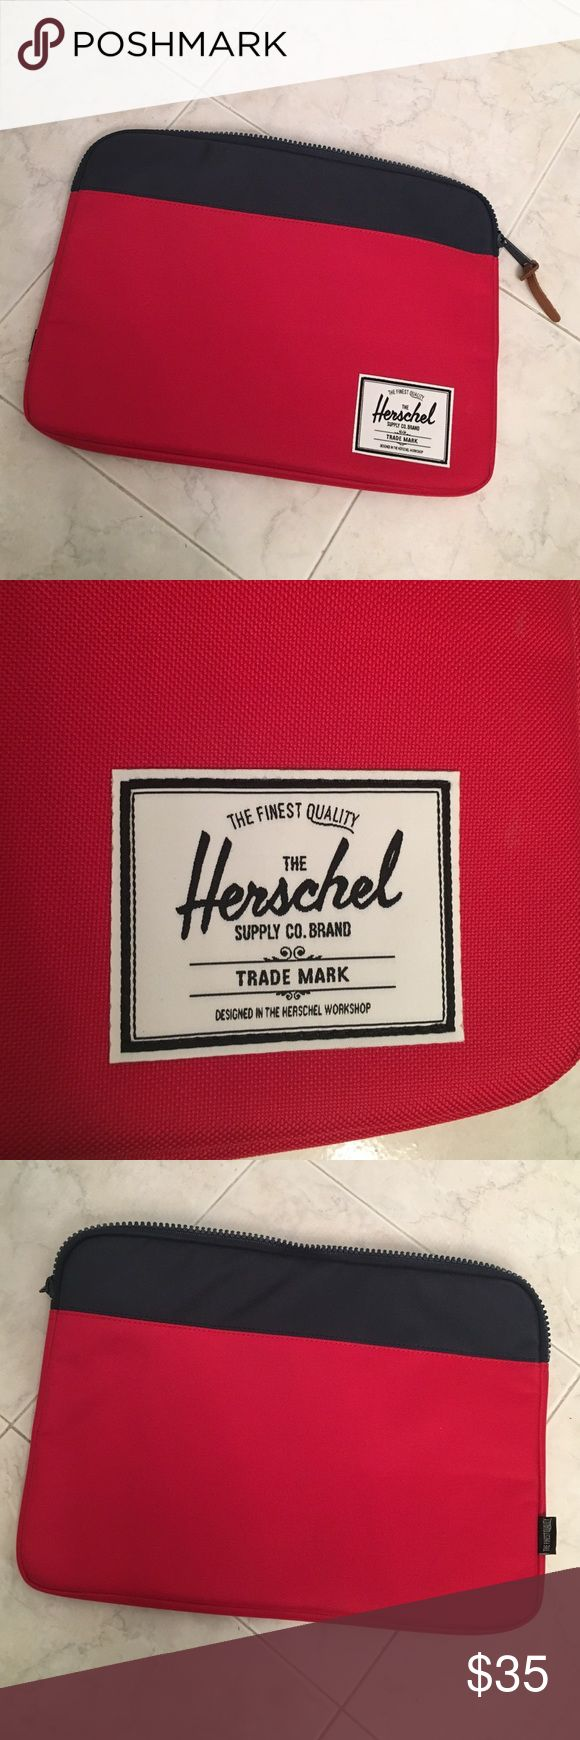 Herschel laptop case NWOT Herschel laptop sleeve with fuzzy interior lining.  Canvas like exterior. Never used but purchasing tags have been removed, received as a gift.  authentic Herschel Supply Company Bags Laptop Bags